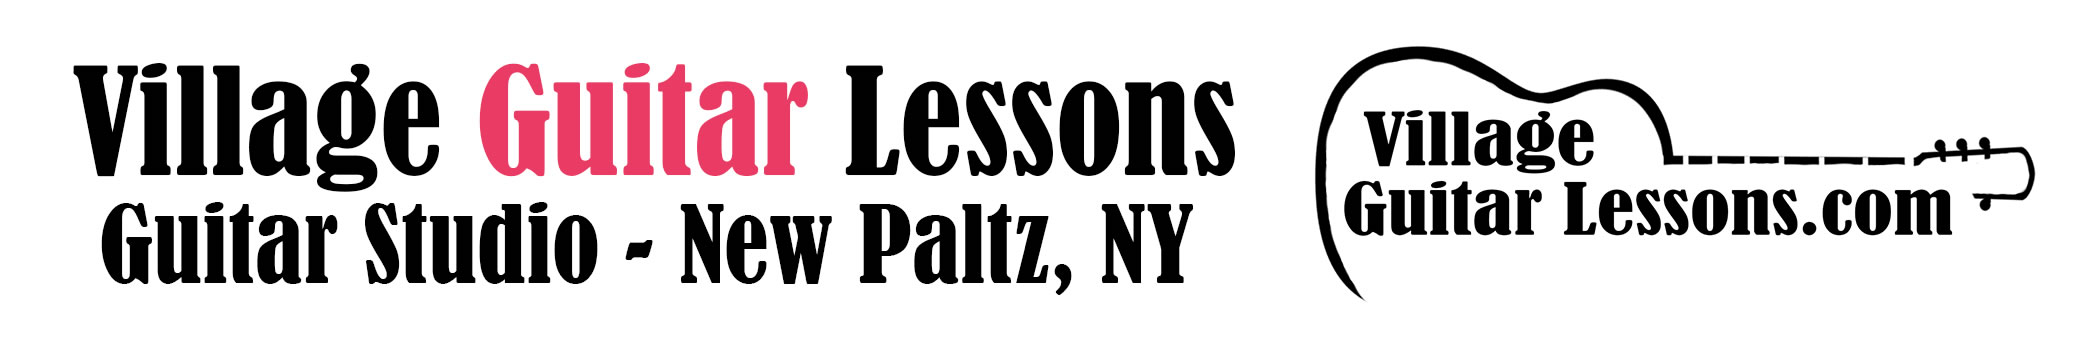 Village Guitar Lessons Header